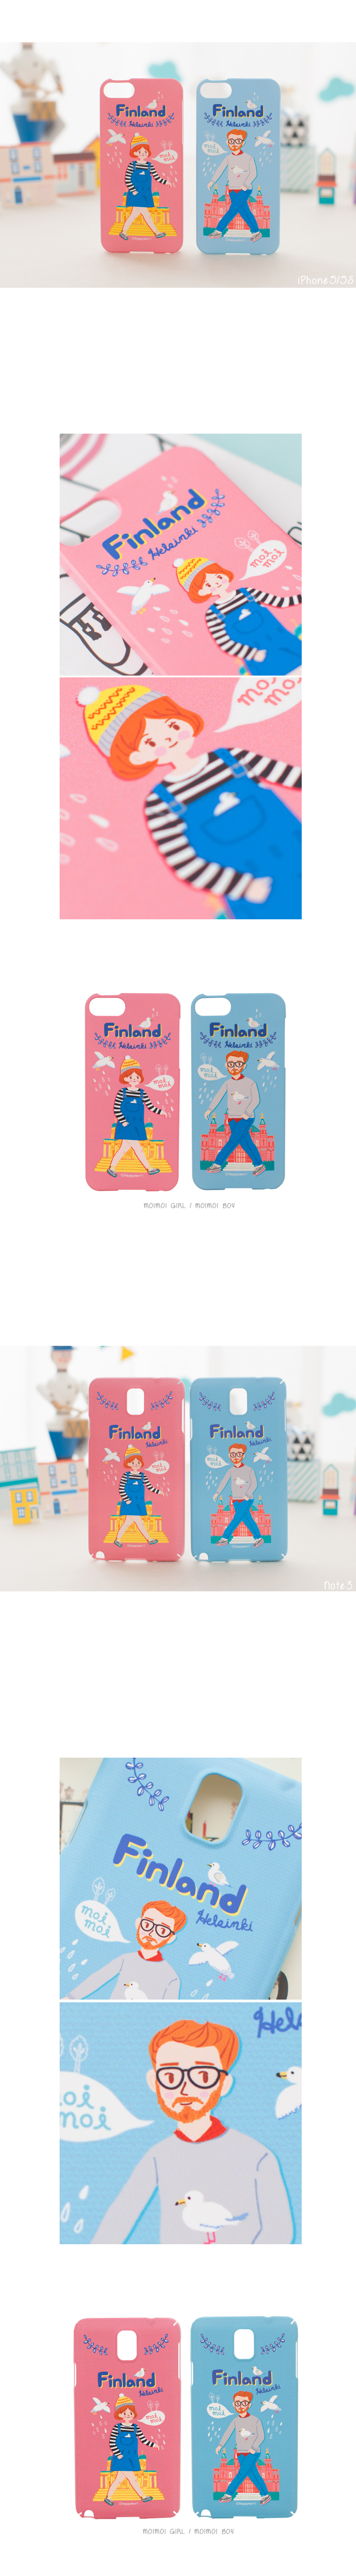 [HAPPYMORI] Hard Case _ MoiMoi (iPhone5_5s,iPhone6,Galaxy S5,Galaxy S6,Galaxy S6 Edge)